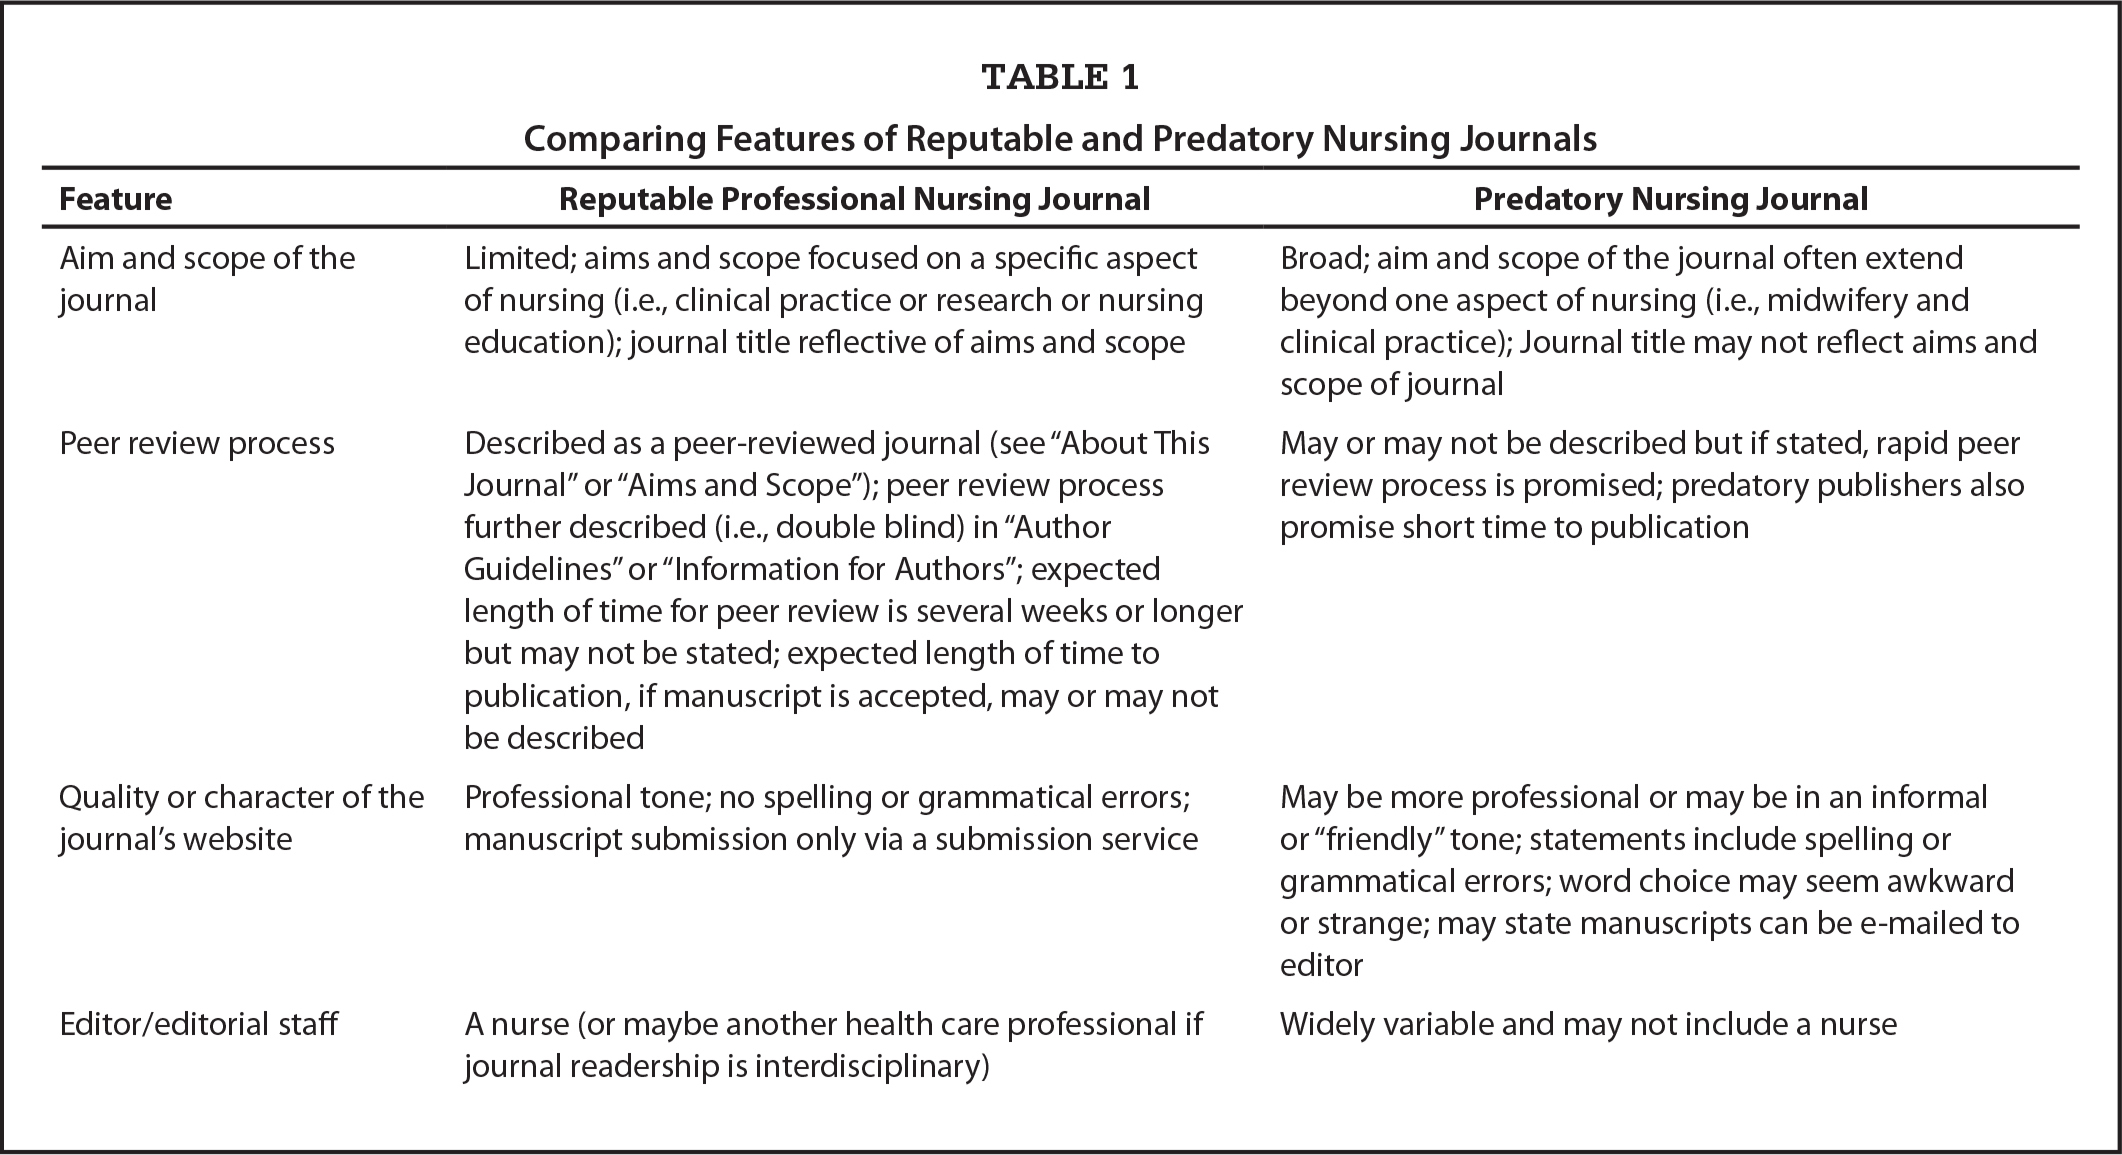 Comparing Features of Reputable and Predatory Nursing Journals